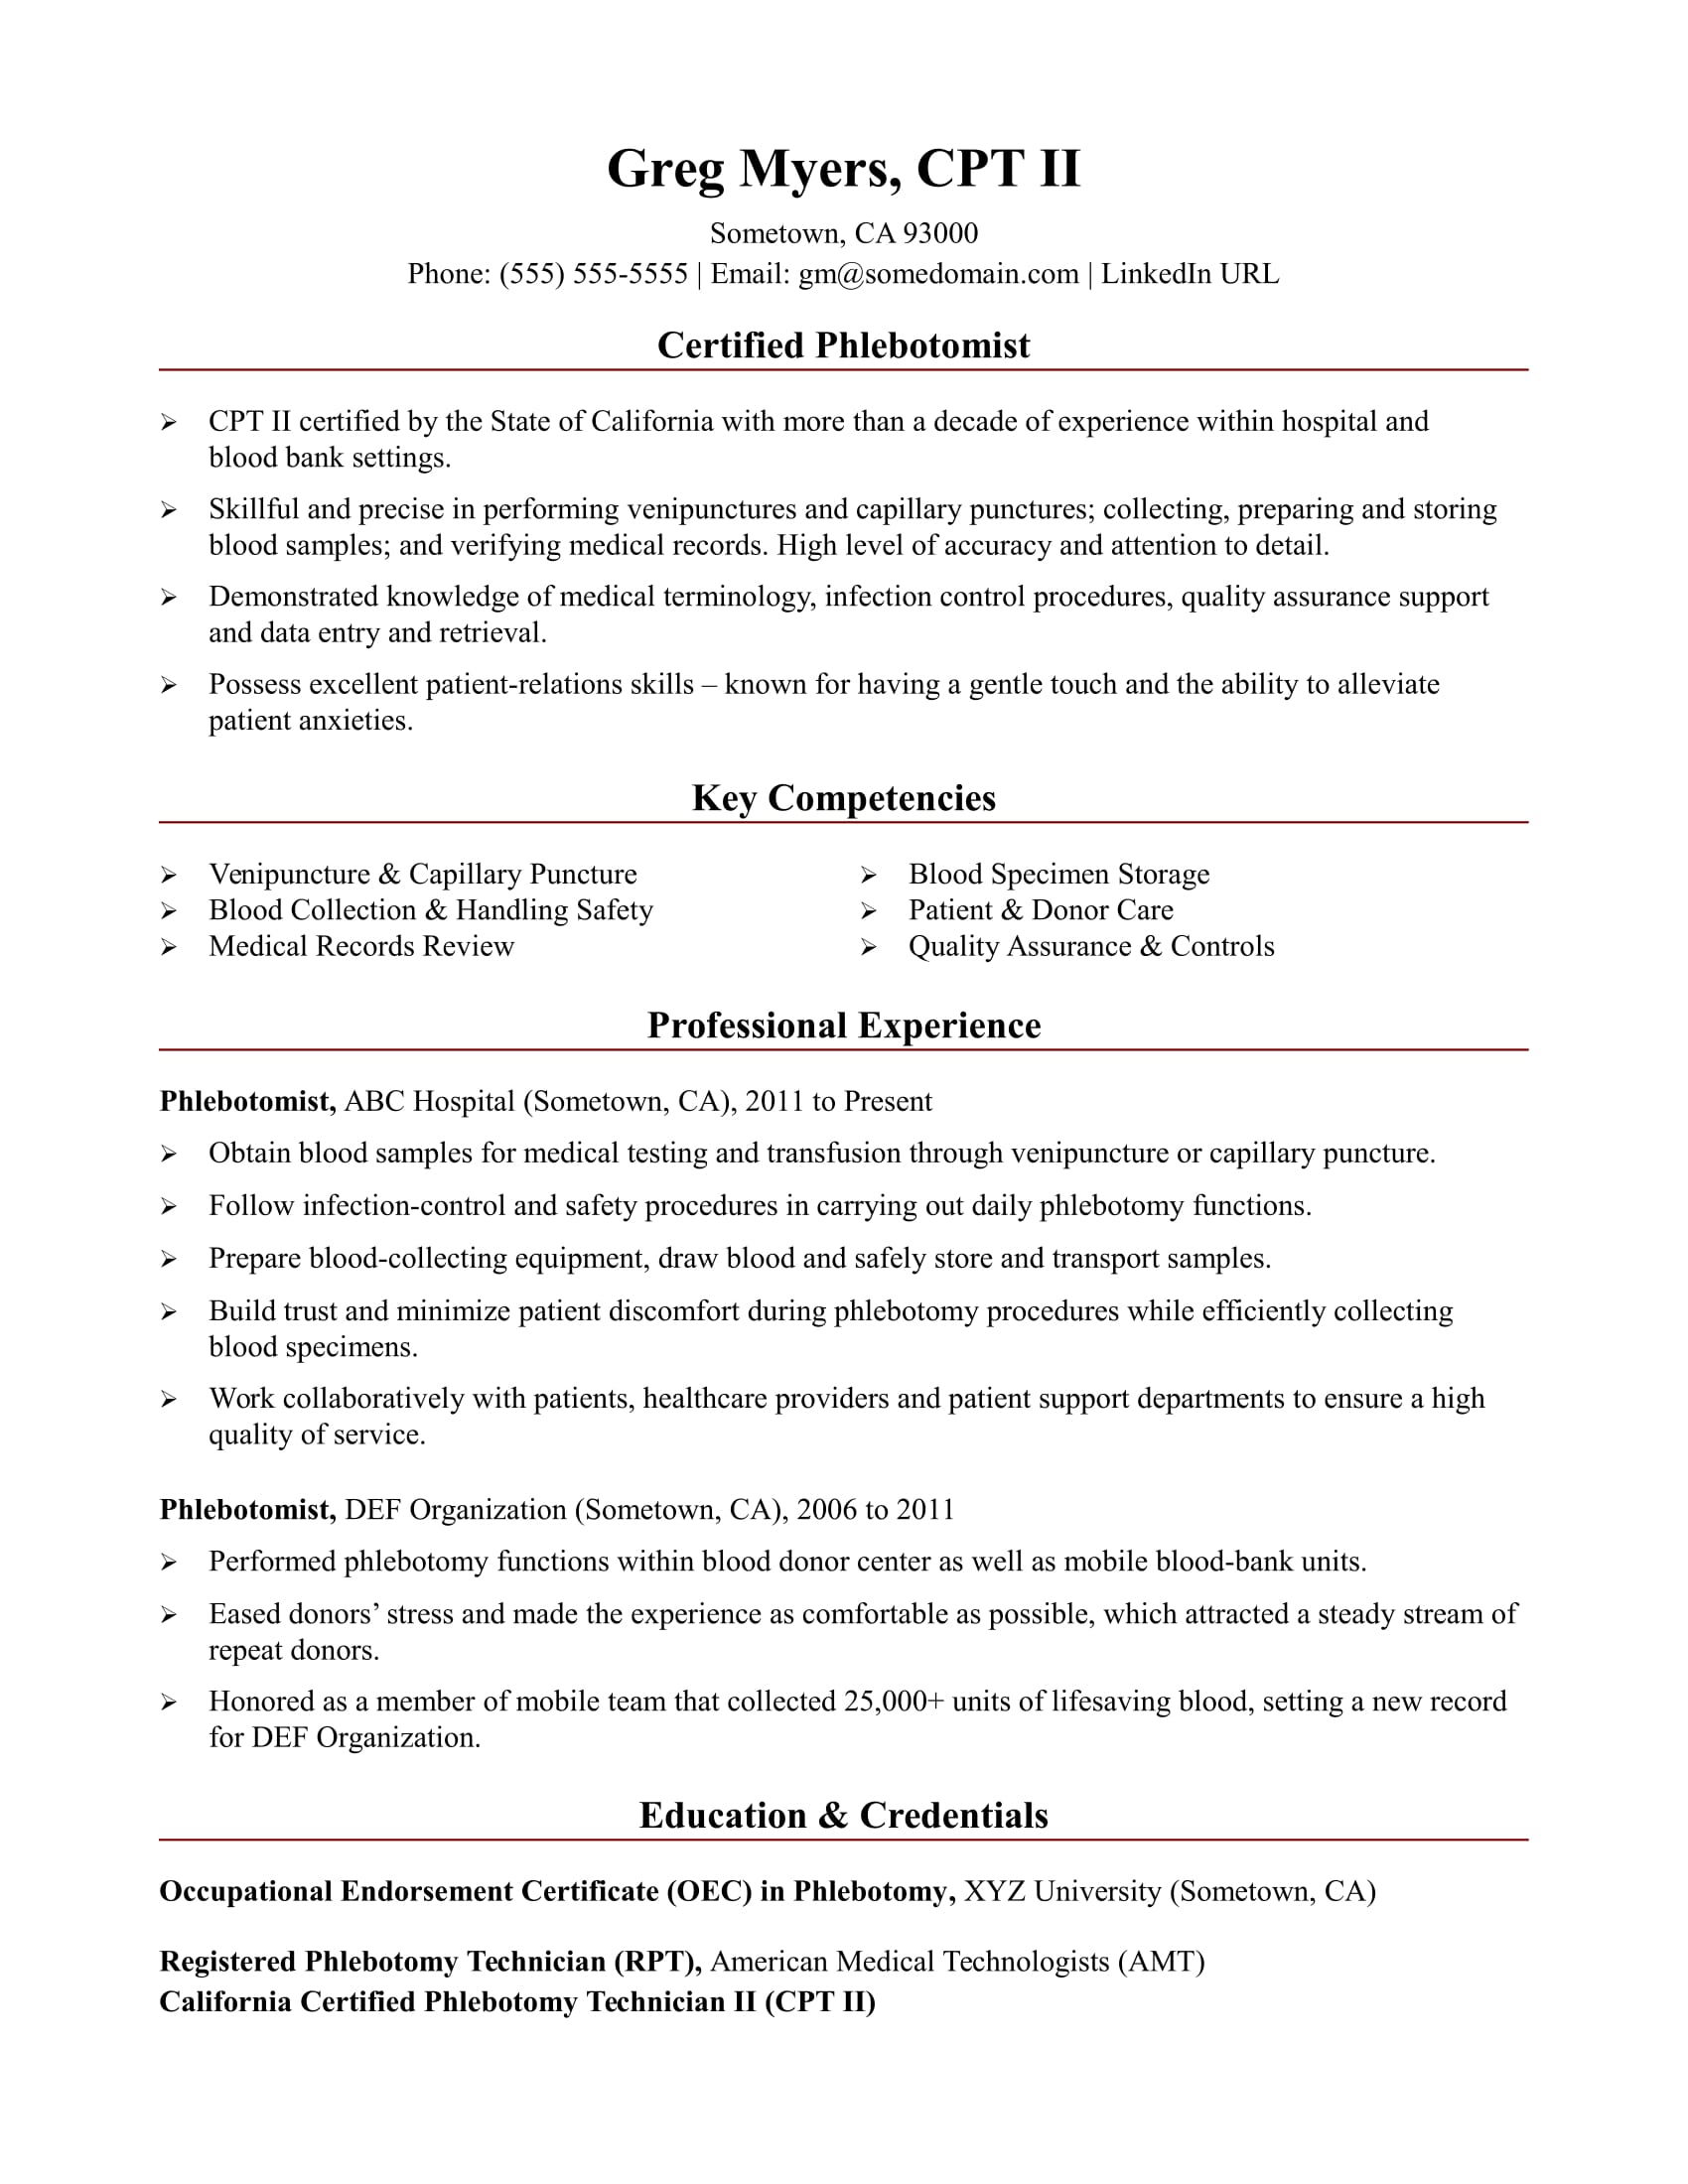 Wonderful Sample Resume For A Phlebotomist To Phlebotomist Duties Resume